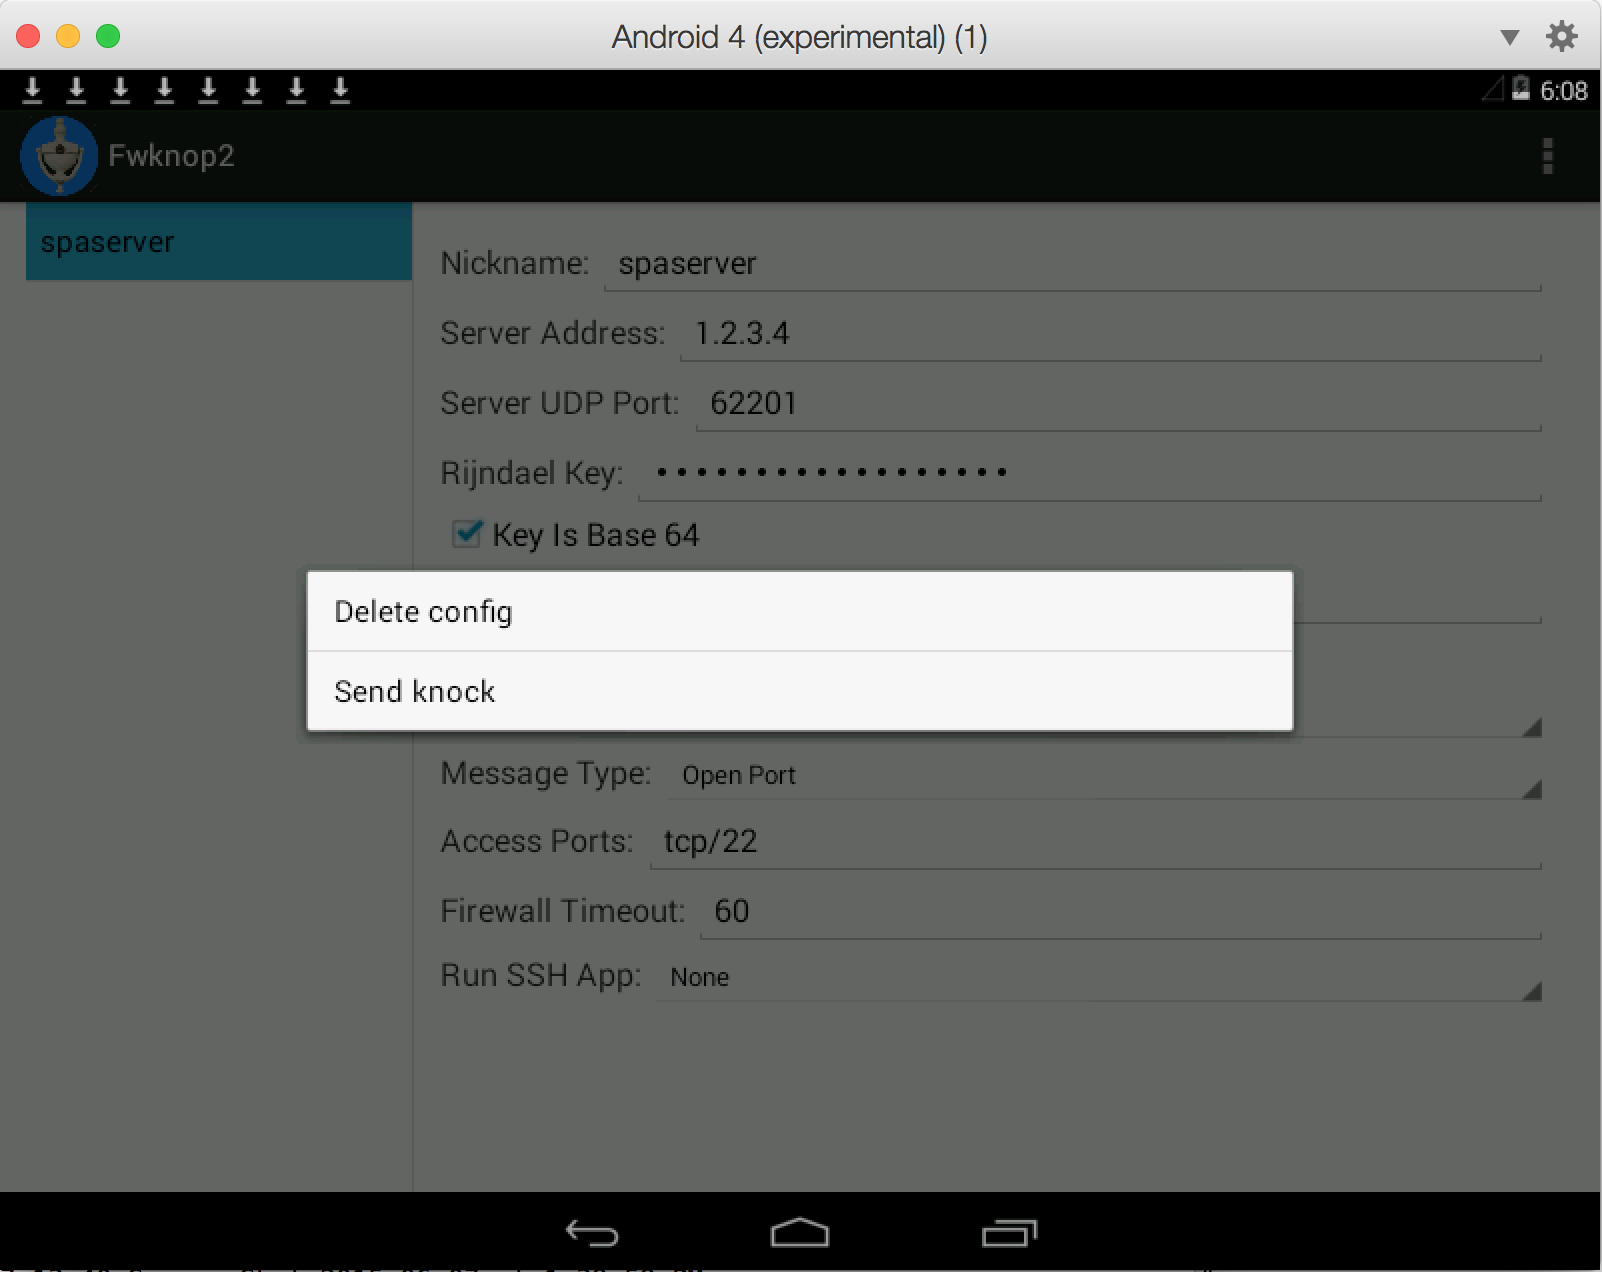 New Android Single Packet Authorization Client: Fwknop2